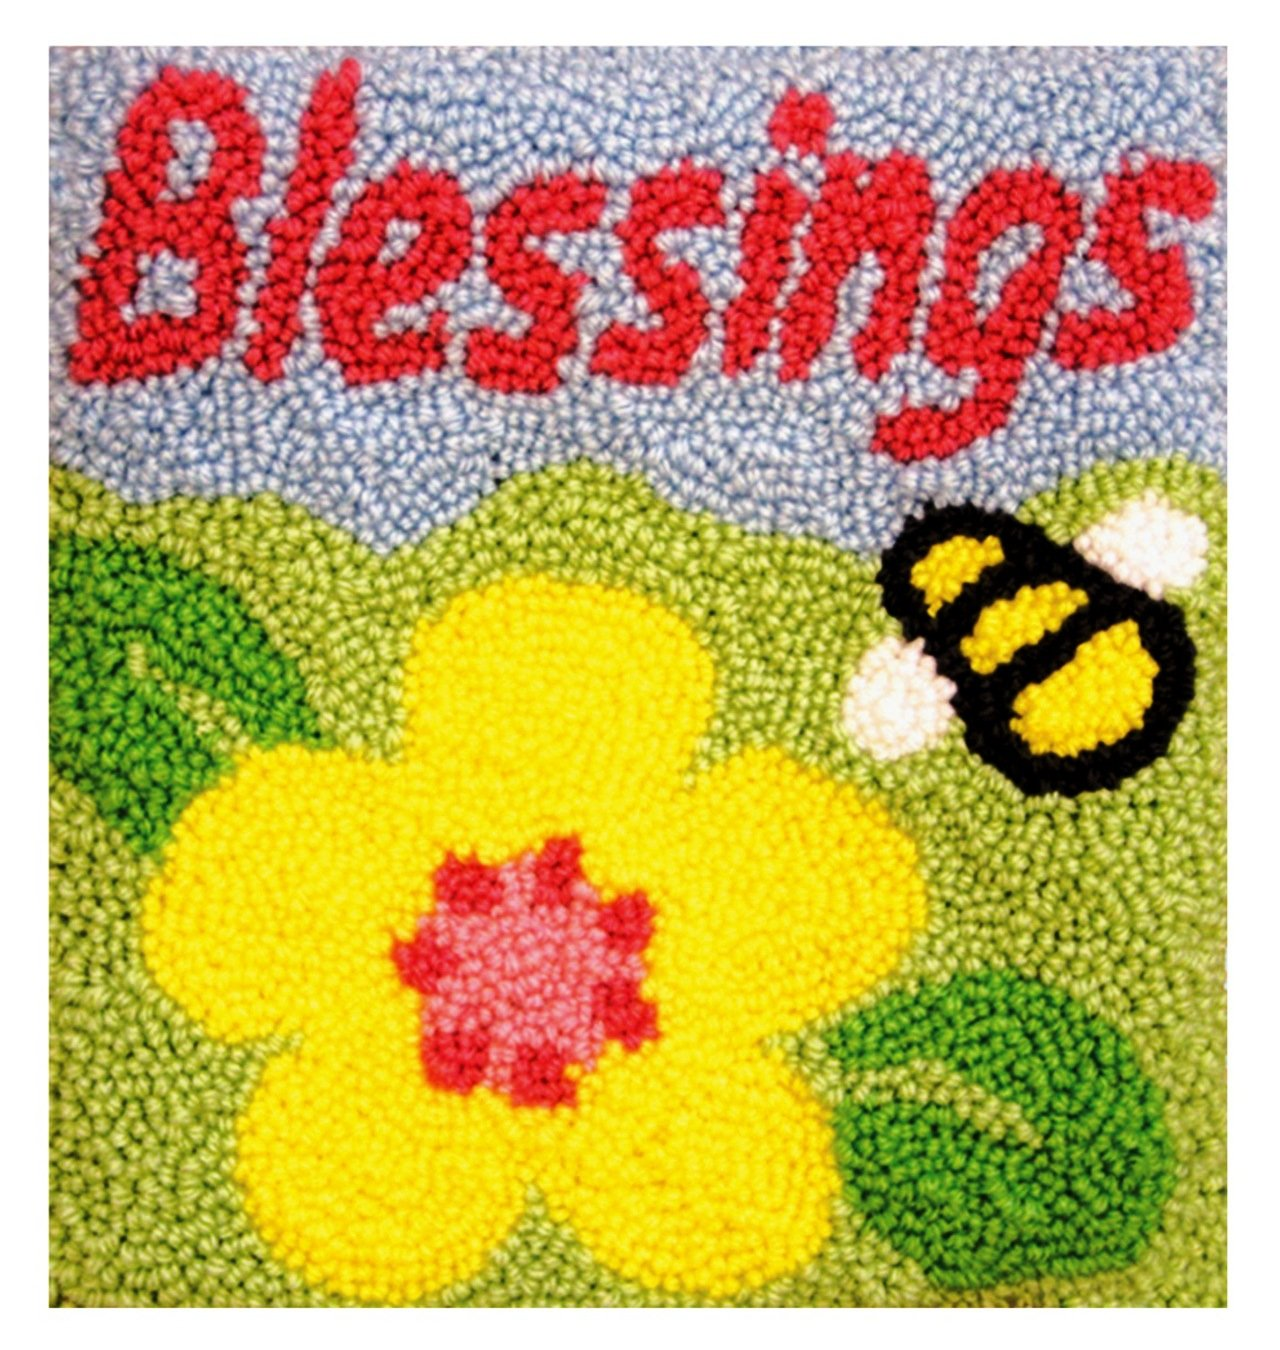 MCG Textiles Blessings Pillow Rug Yarn Punch Needle Kit by MCG Textiles